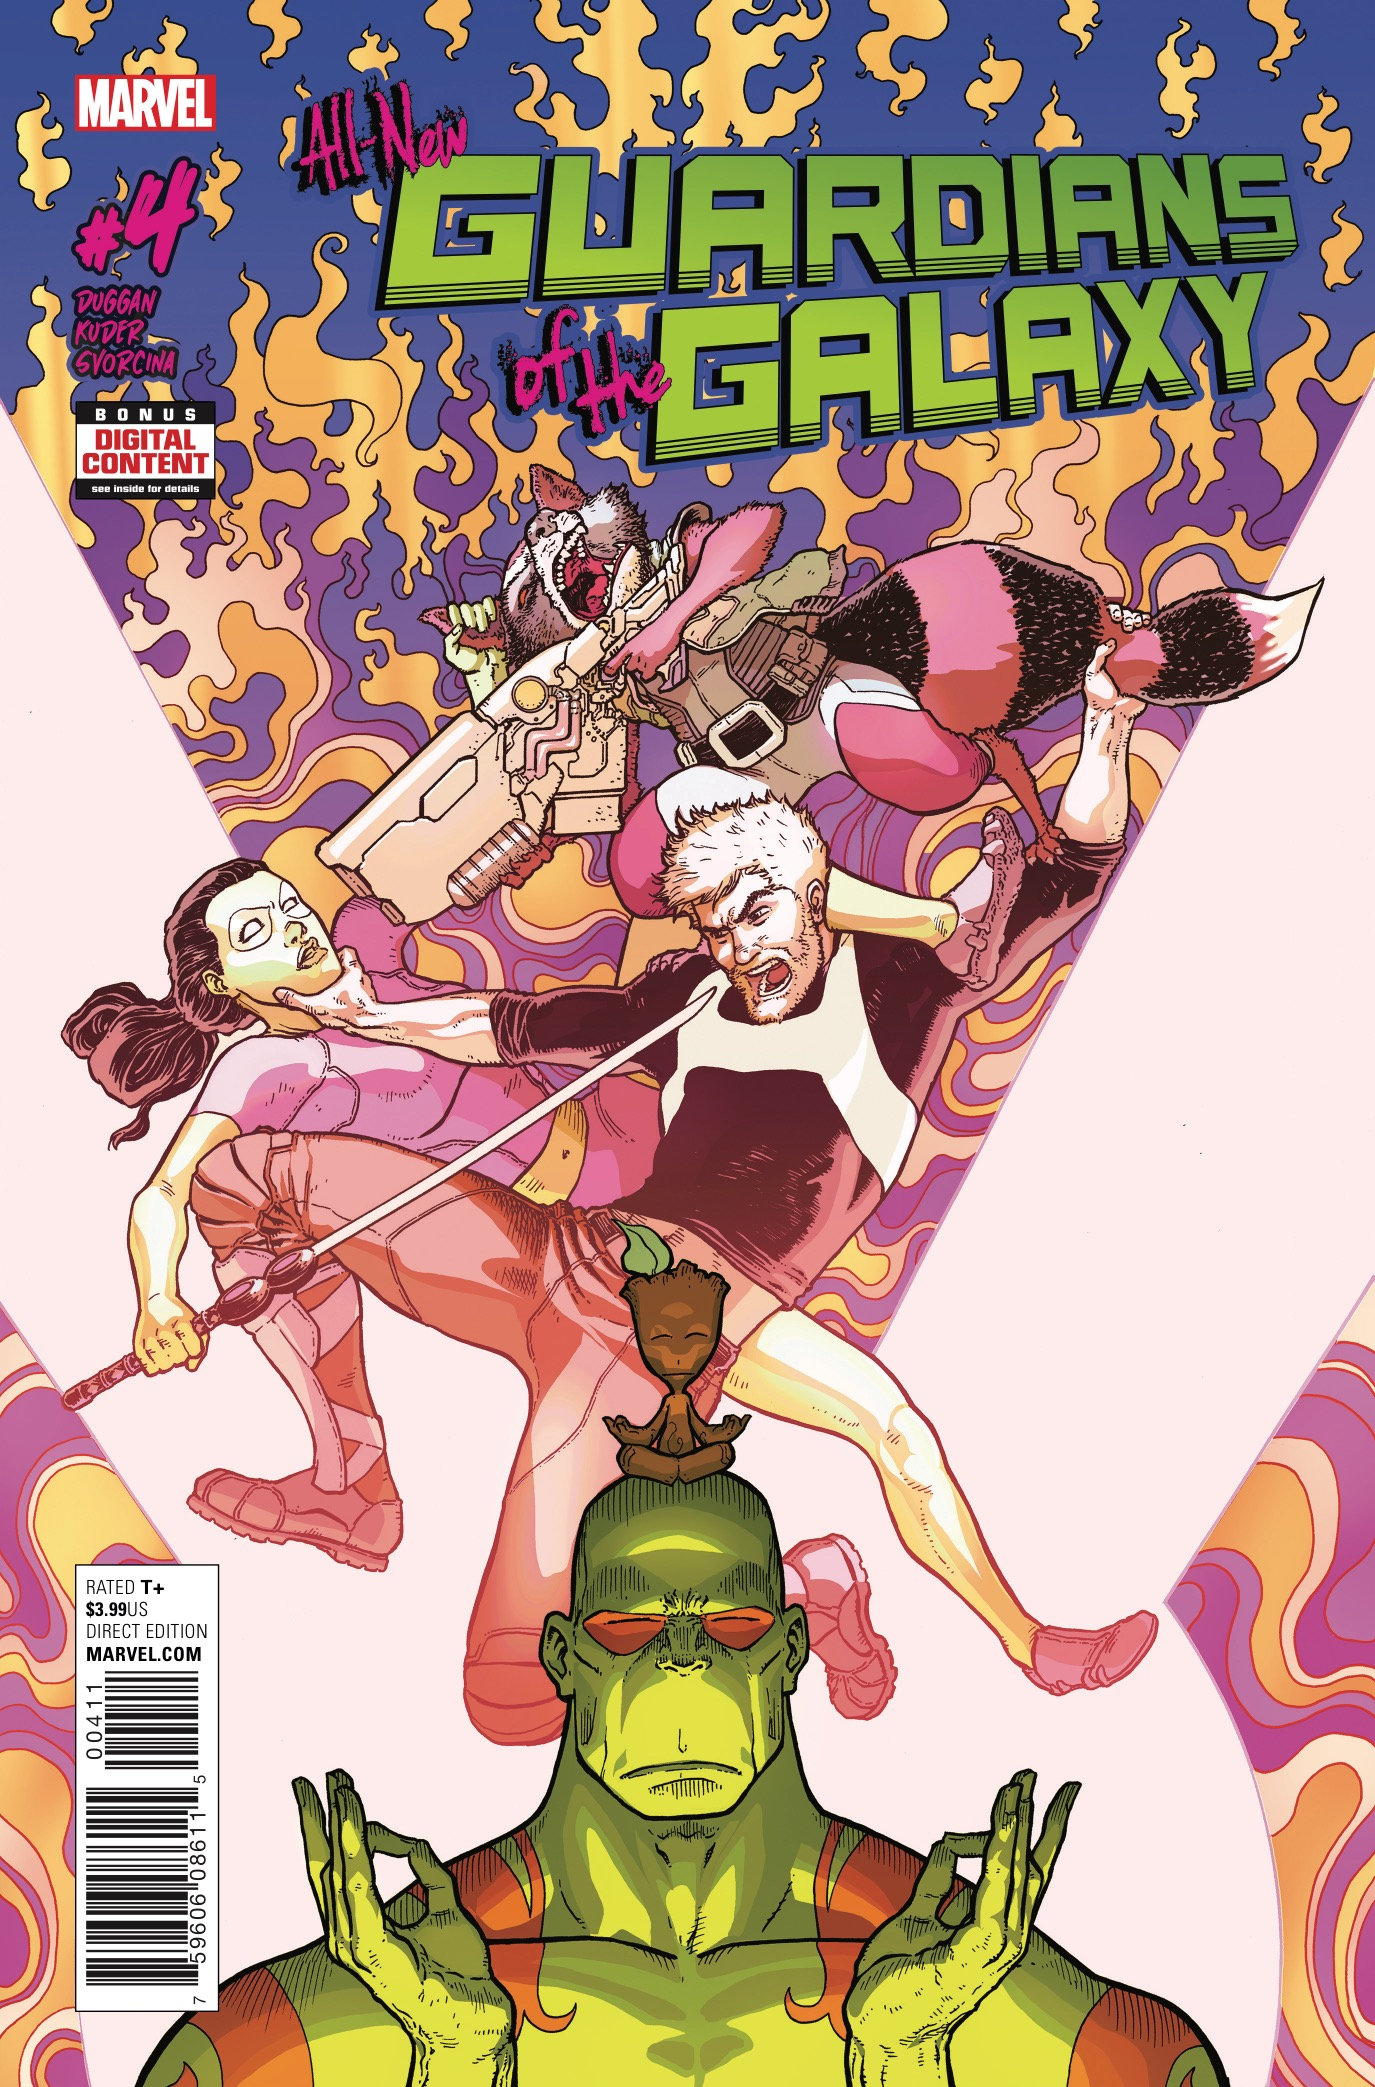 Shockingly, I wasn't completely bowled over by the first issue of this series. Then the Free Comic Day comic made me hate myself for ever doubting. Then the third issue made me need to know more about Gamora. And now, the fourth issue, back to the main story and picking up where issue #2 left off. Delightful...